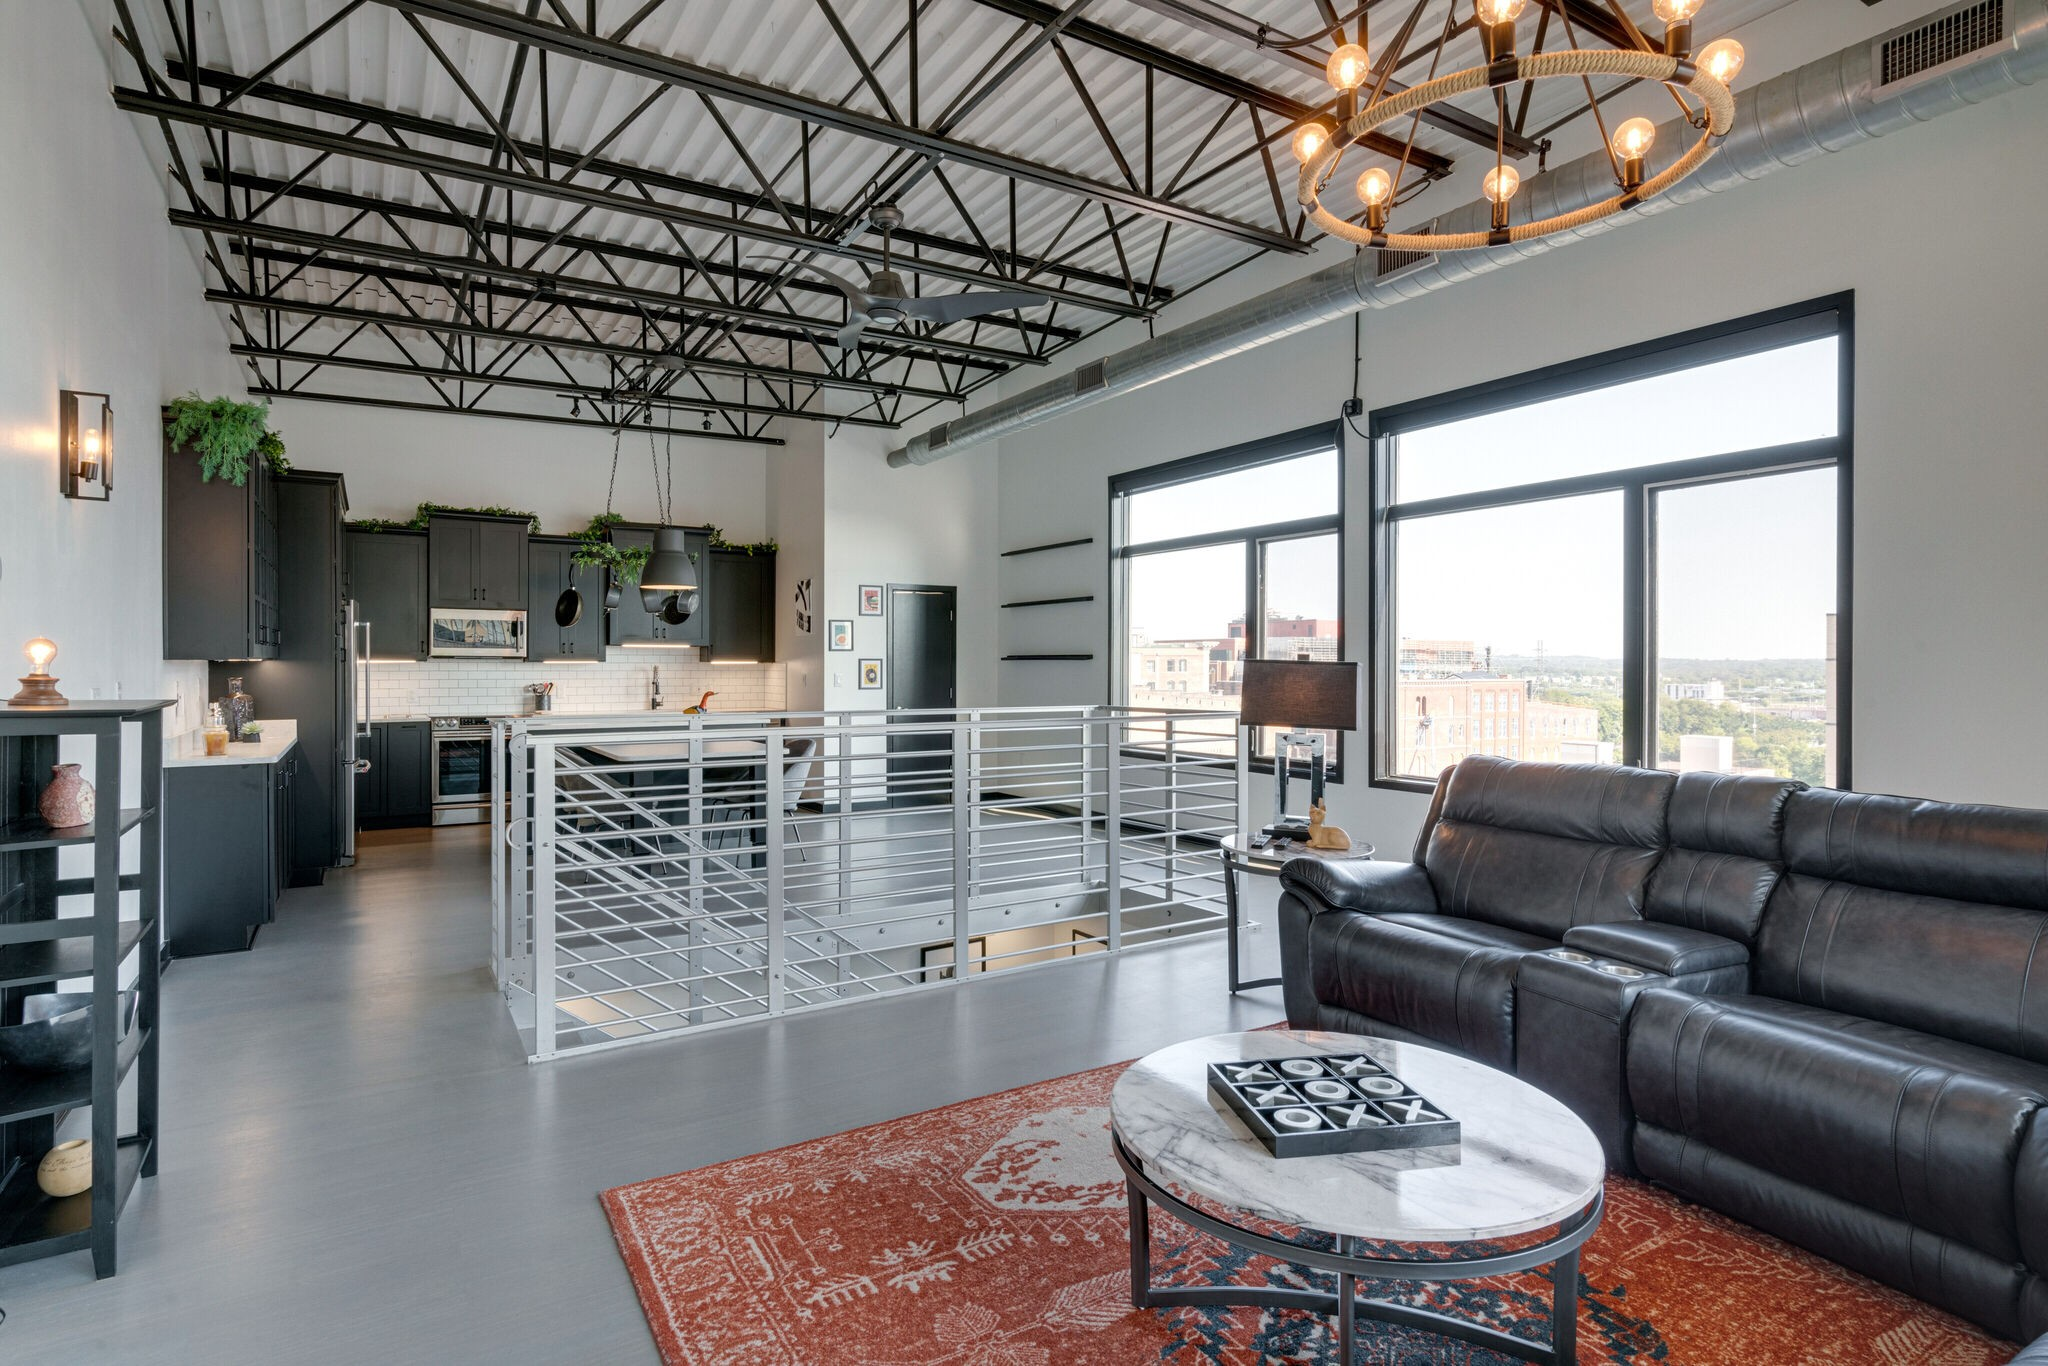 Right in the heart of Downtown Nashville, steps away from Printer's Alley:  Unique two story fully renovated from top to bottom - new HVAC.  Sold fully furnished:  Furniture, decor, art, tv's, bedding & kitchen dishes/utensils.  Two balconies w/great views, 2 reserved parking spots.  Remote controlled UV blocking shades.  Quartz countertops kitchen and baths.  Turn key ready!